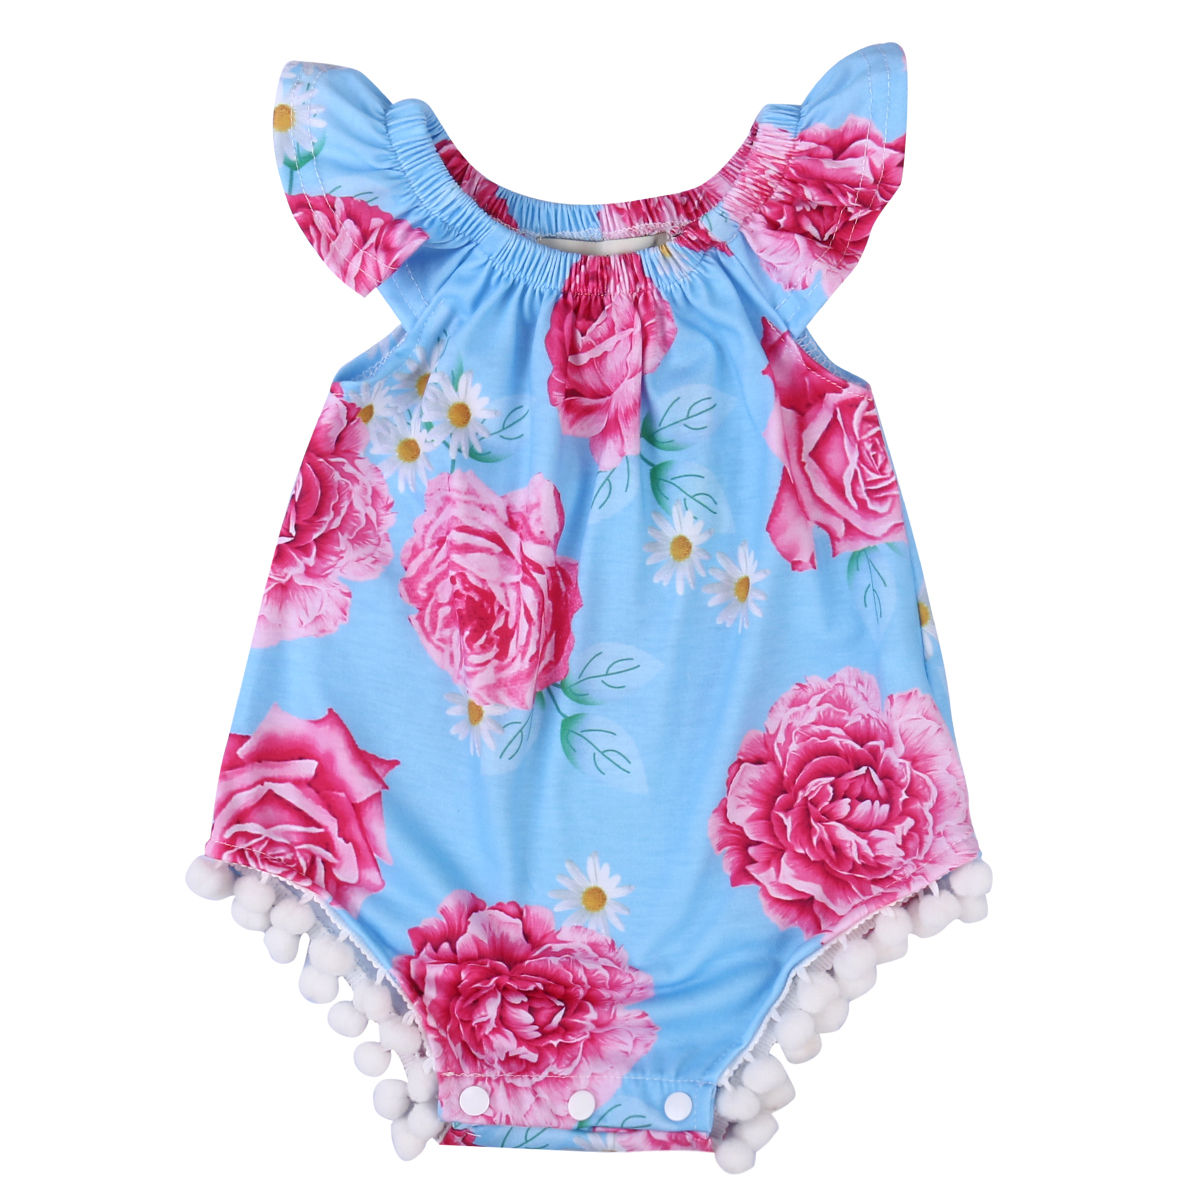 Lovely Newborn Baby Girl Clothes Floral Romper 2017 Summer Sleeveless Infant Bebes Toddler Kids Jumpsuit Outfit Sunsuit 0-24M 2017 newborn baby boy girl clothes floral infant bebes romper bodysuit and bloomers bottom 2pcs outfit bebek giyim clothing